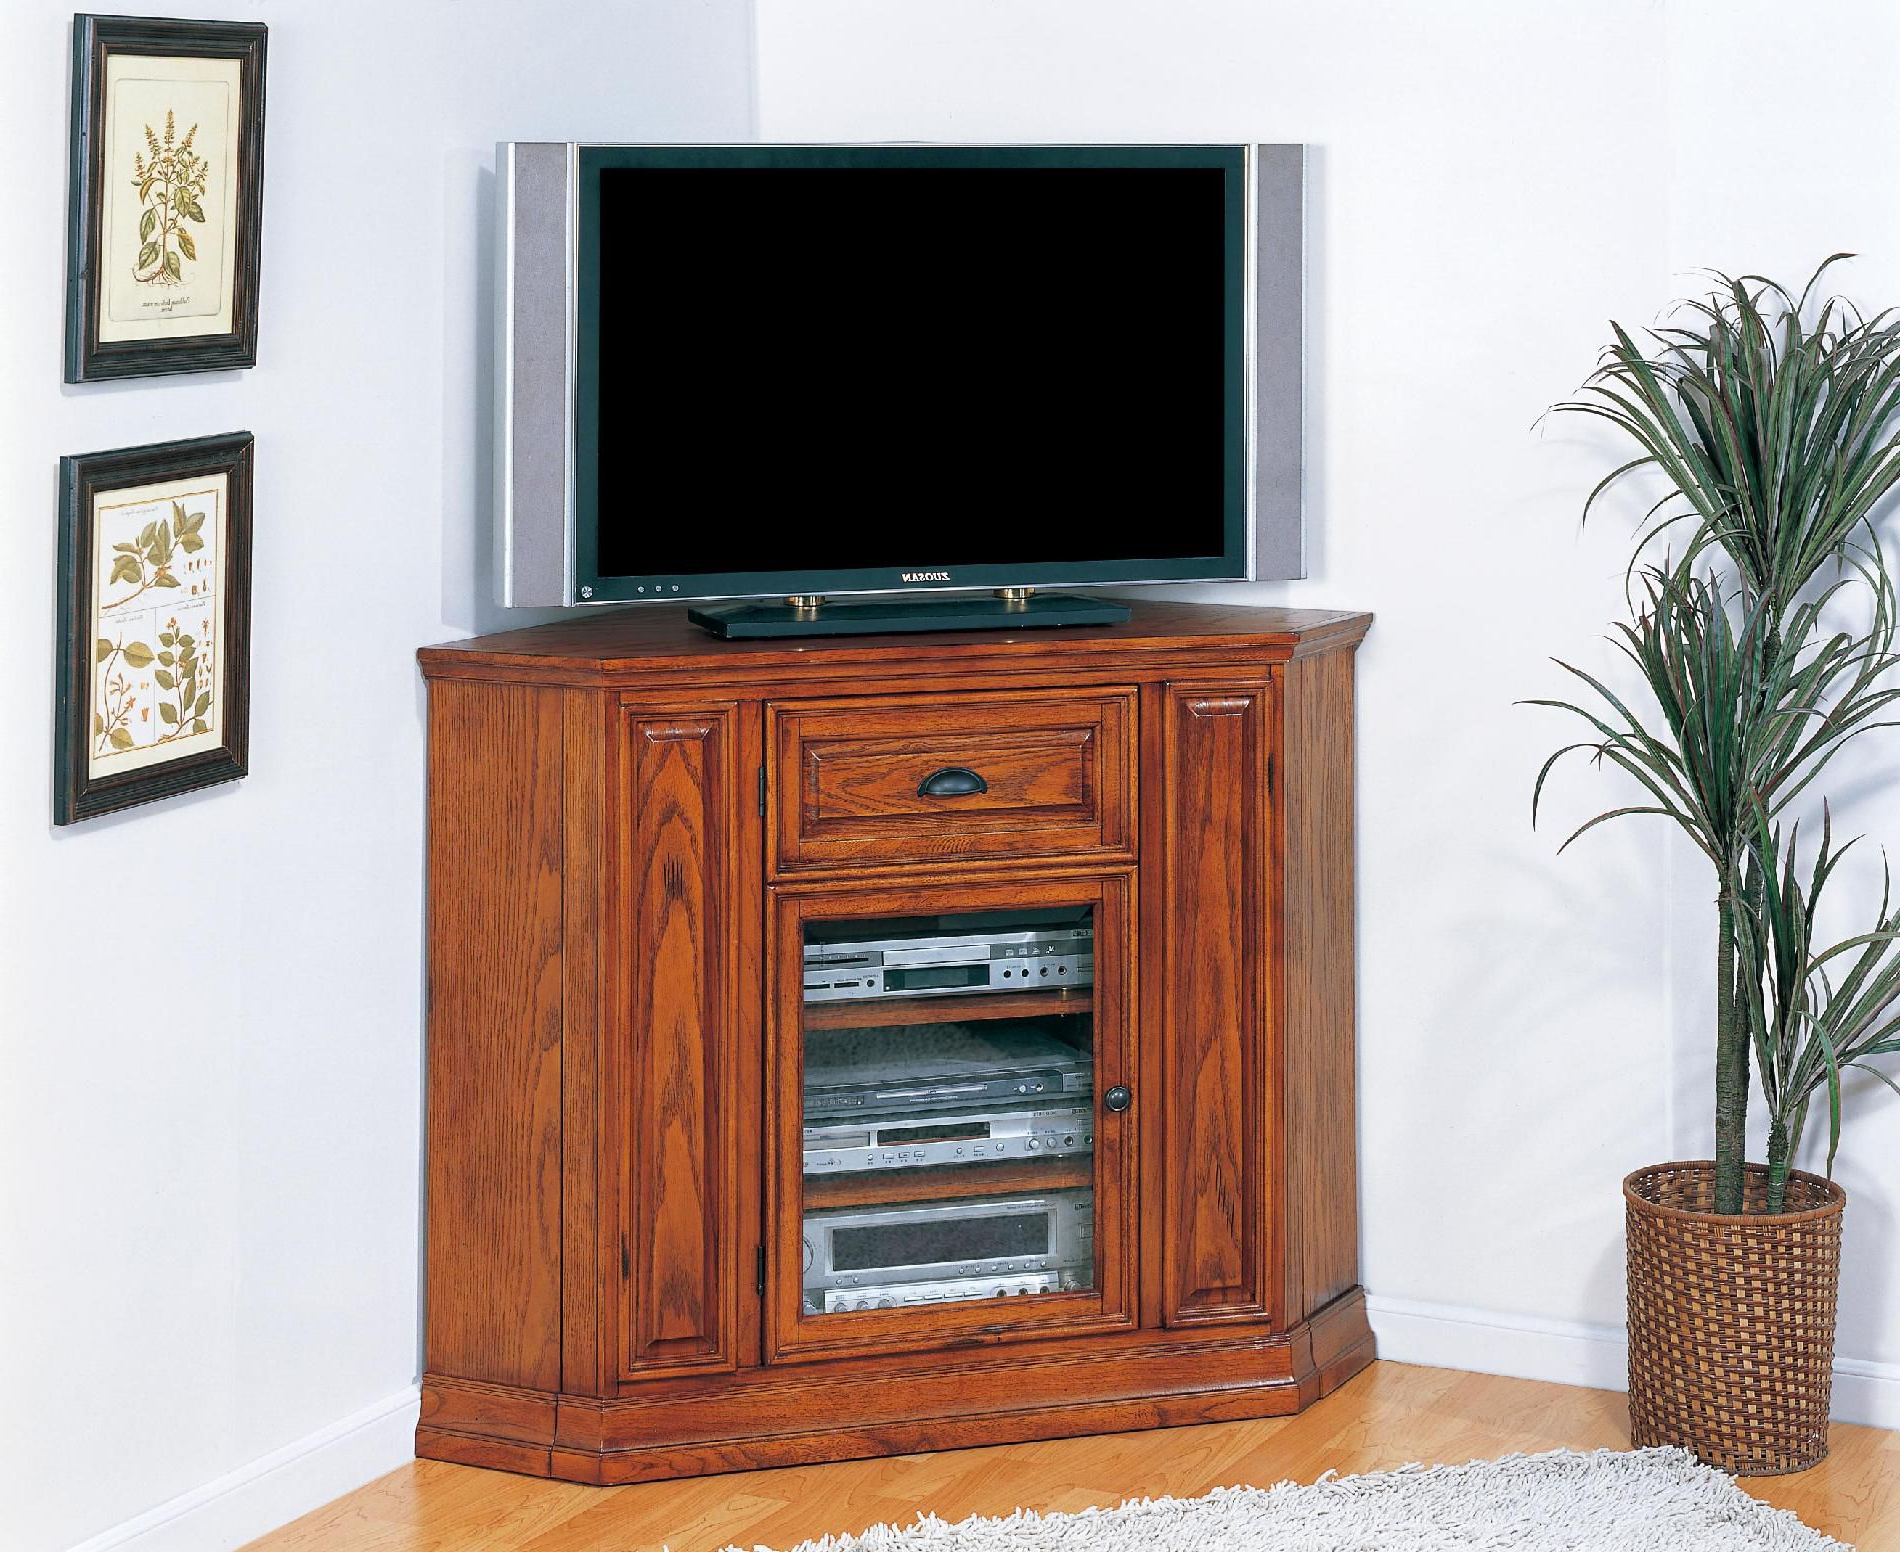 Tv Stand With Mount 65 Inch Tall Corner Cabinet Doors White Cheap Inside Well Liked Tall Tv Cabinets Corner Unit (View 2 of 20)